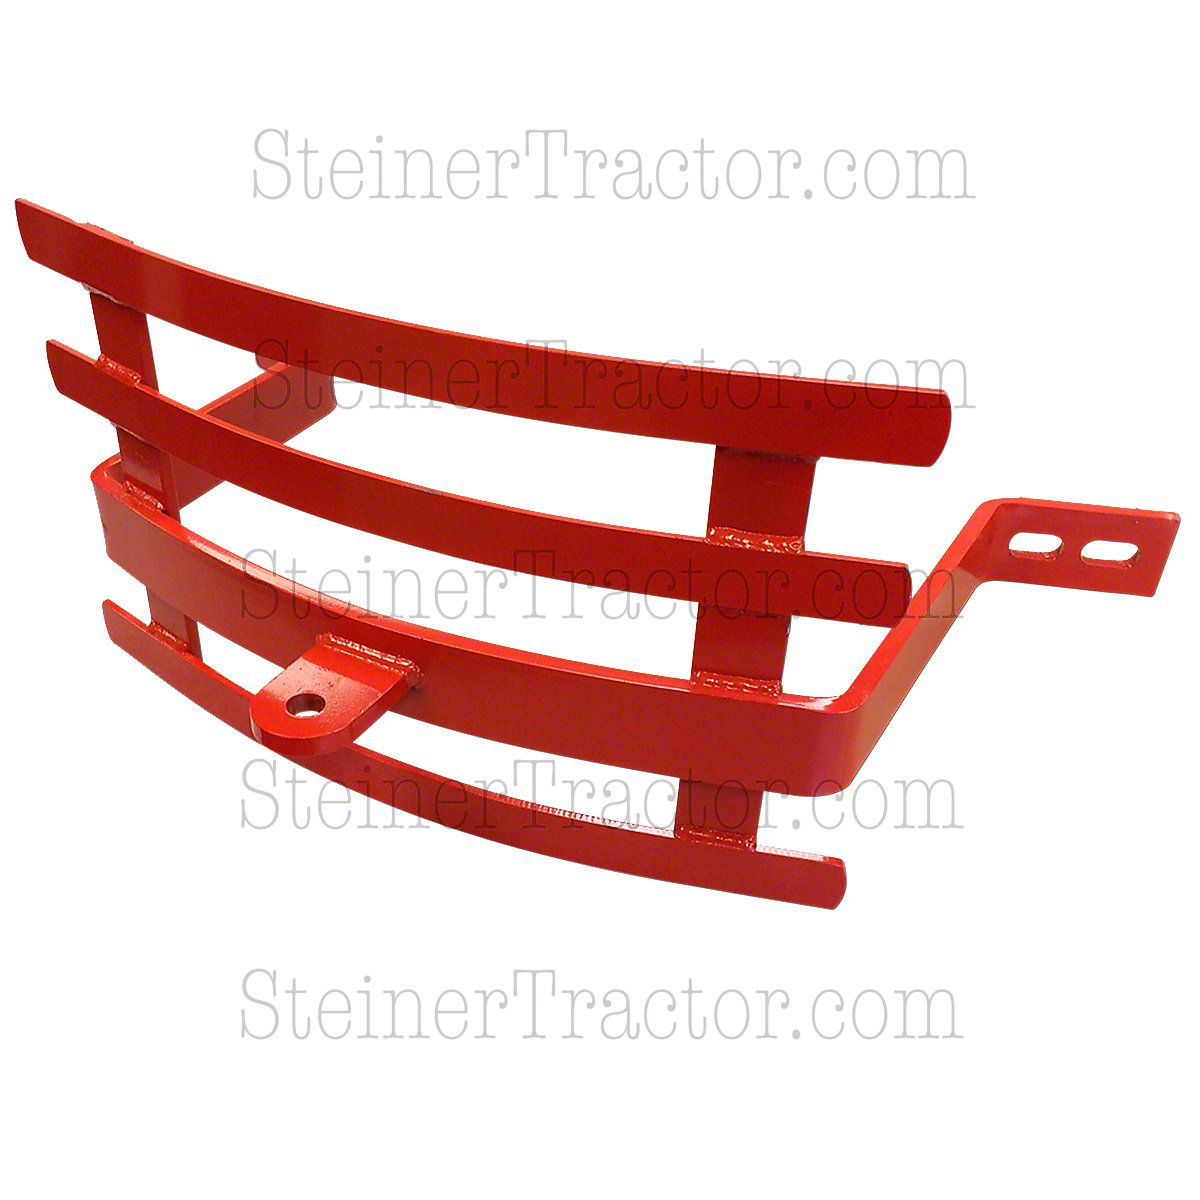 hight resolution of fds031 heavy duty ford front bumper fits 8n 9n 2n naa 600 800 more